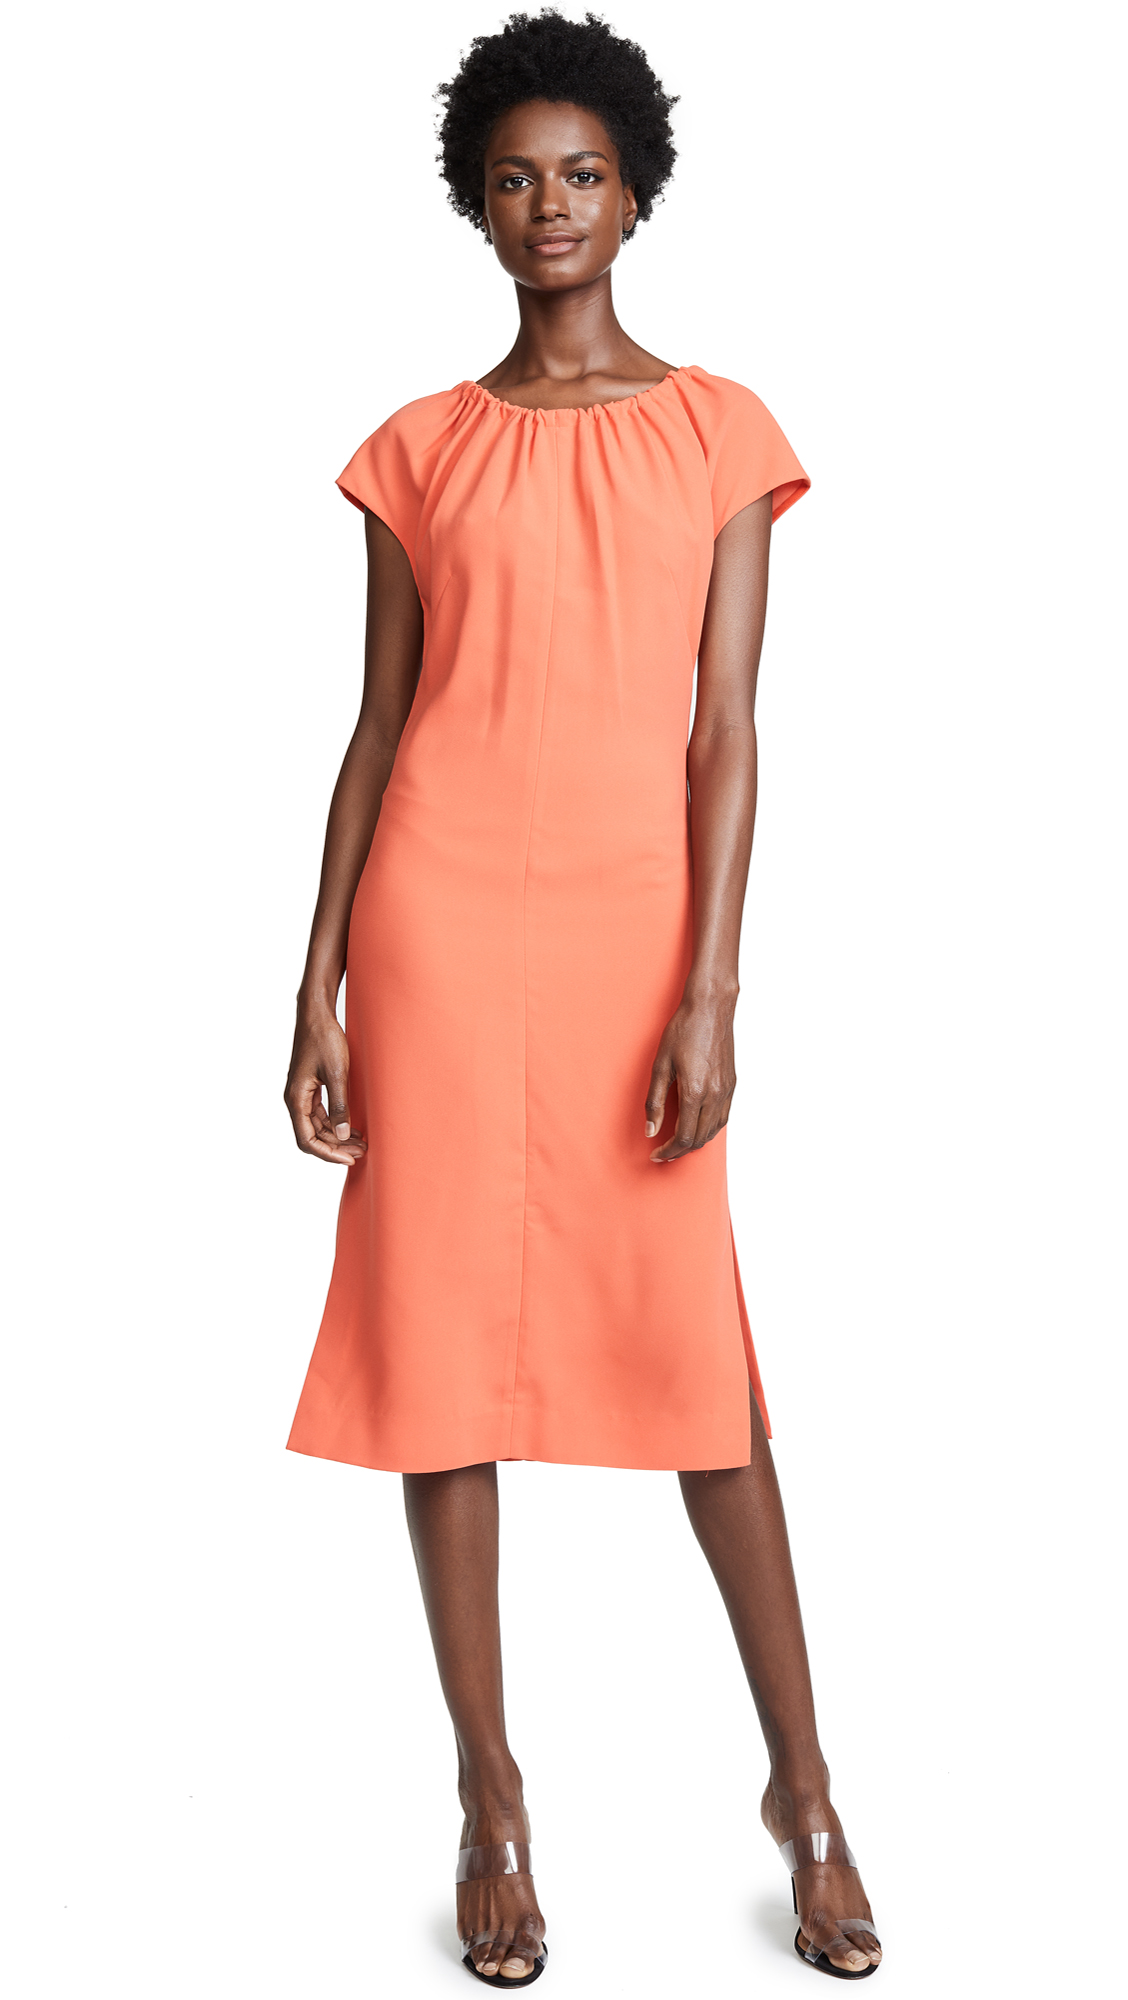 Diane von Furstenberg Pintuck Block Dress